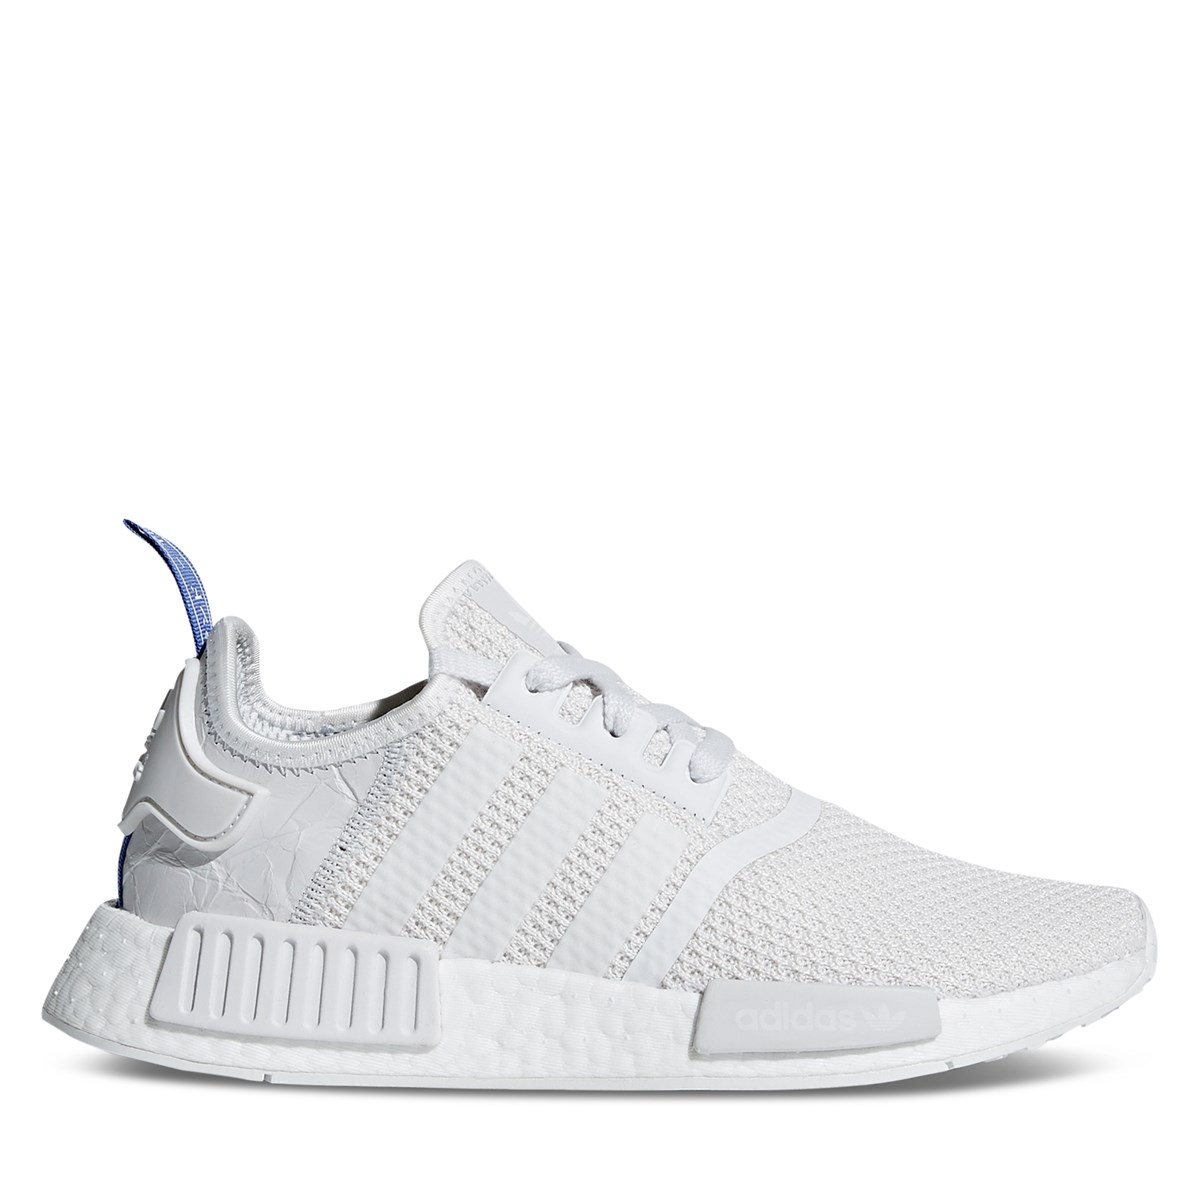 ab271fc73247 Women s NMD R1 Sneaker in White. Previous. default view ...